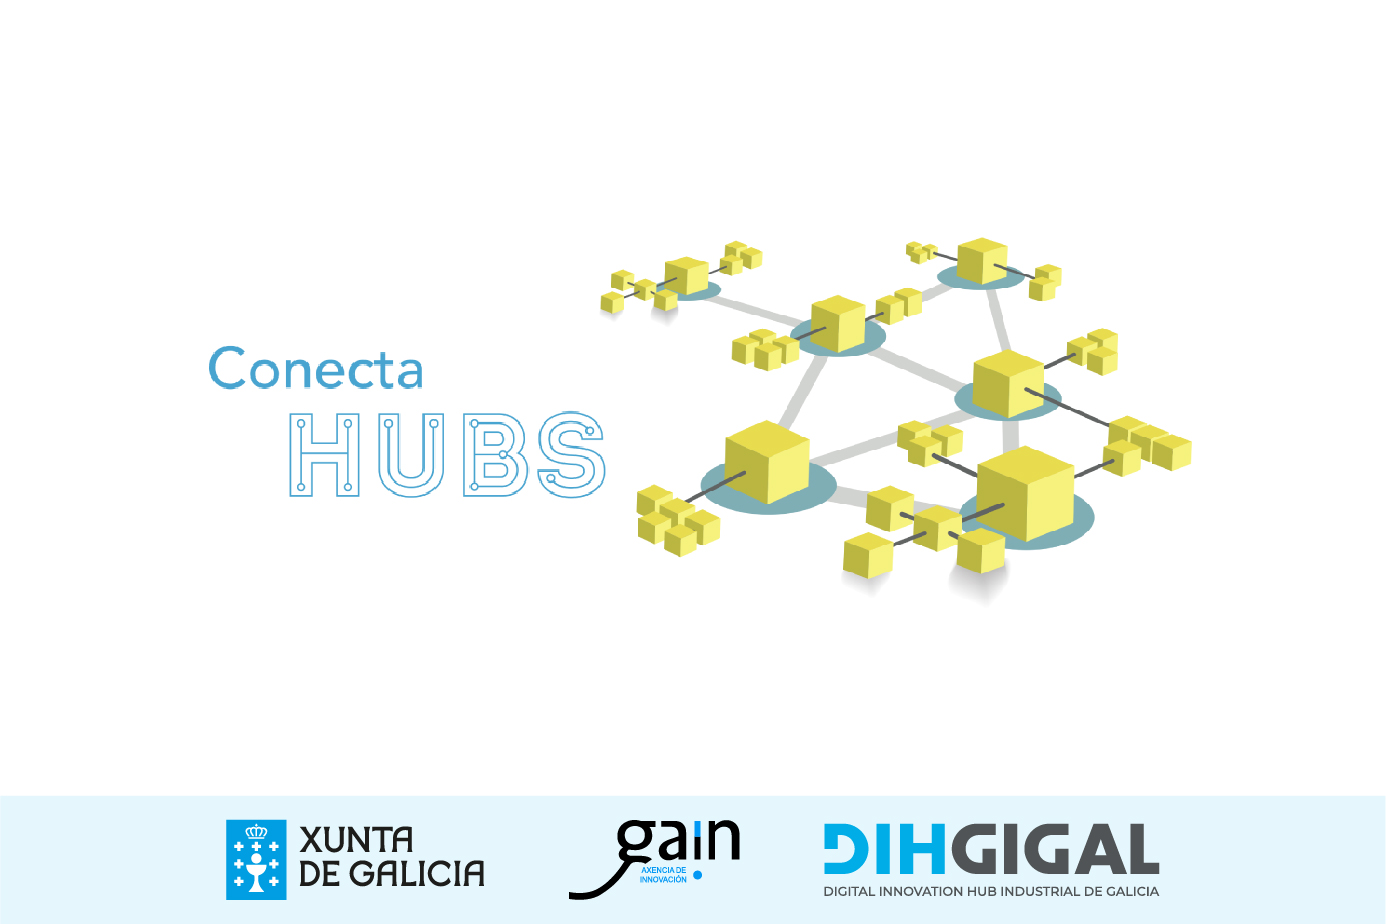 noticia conecta hubs 2feb